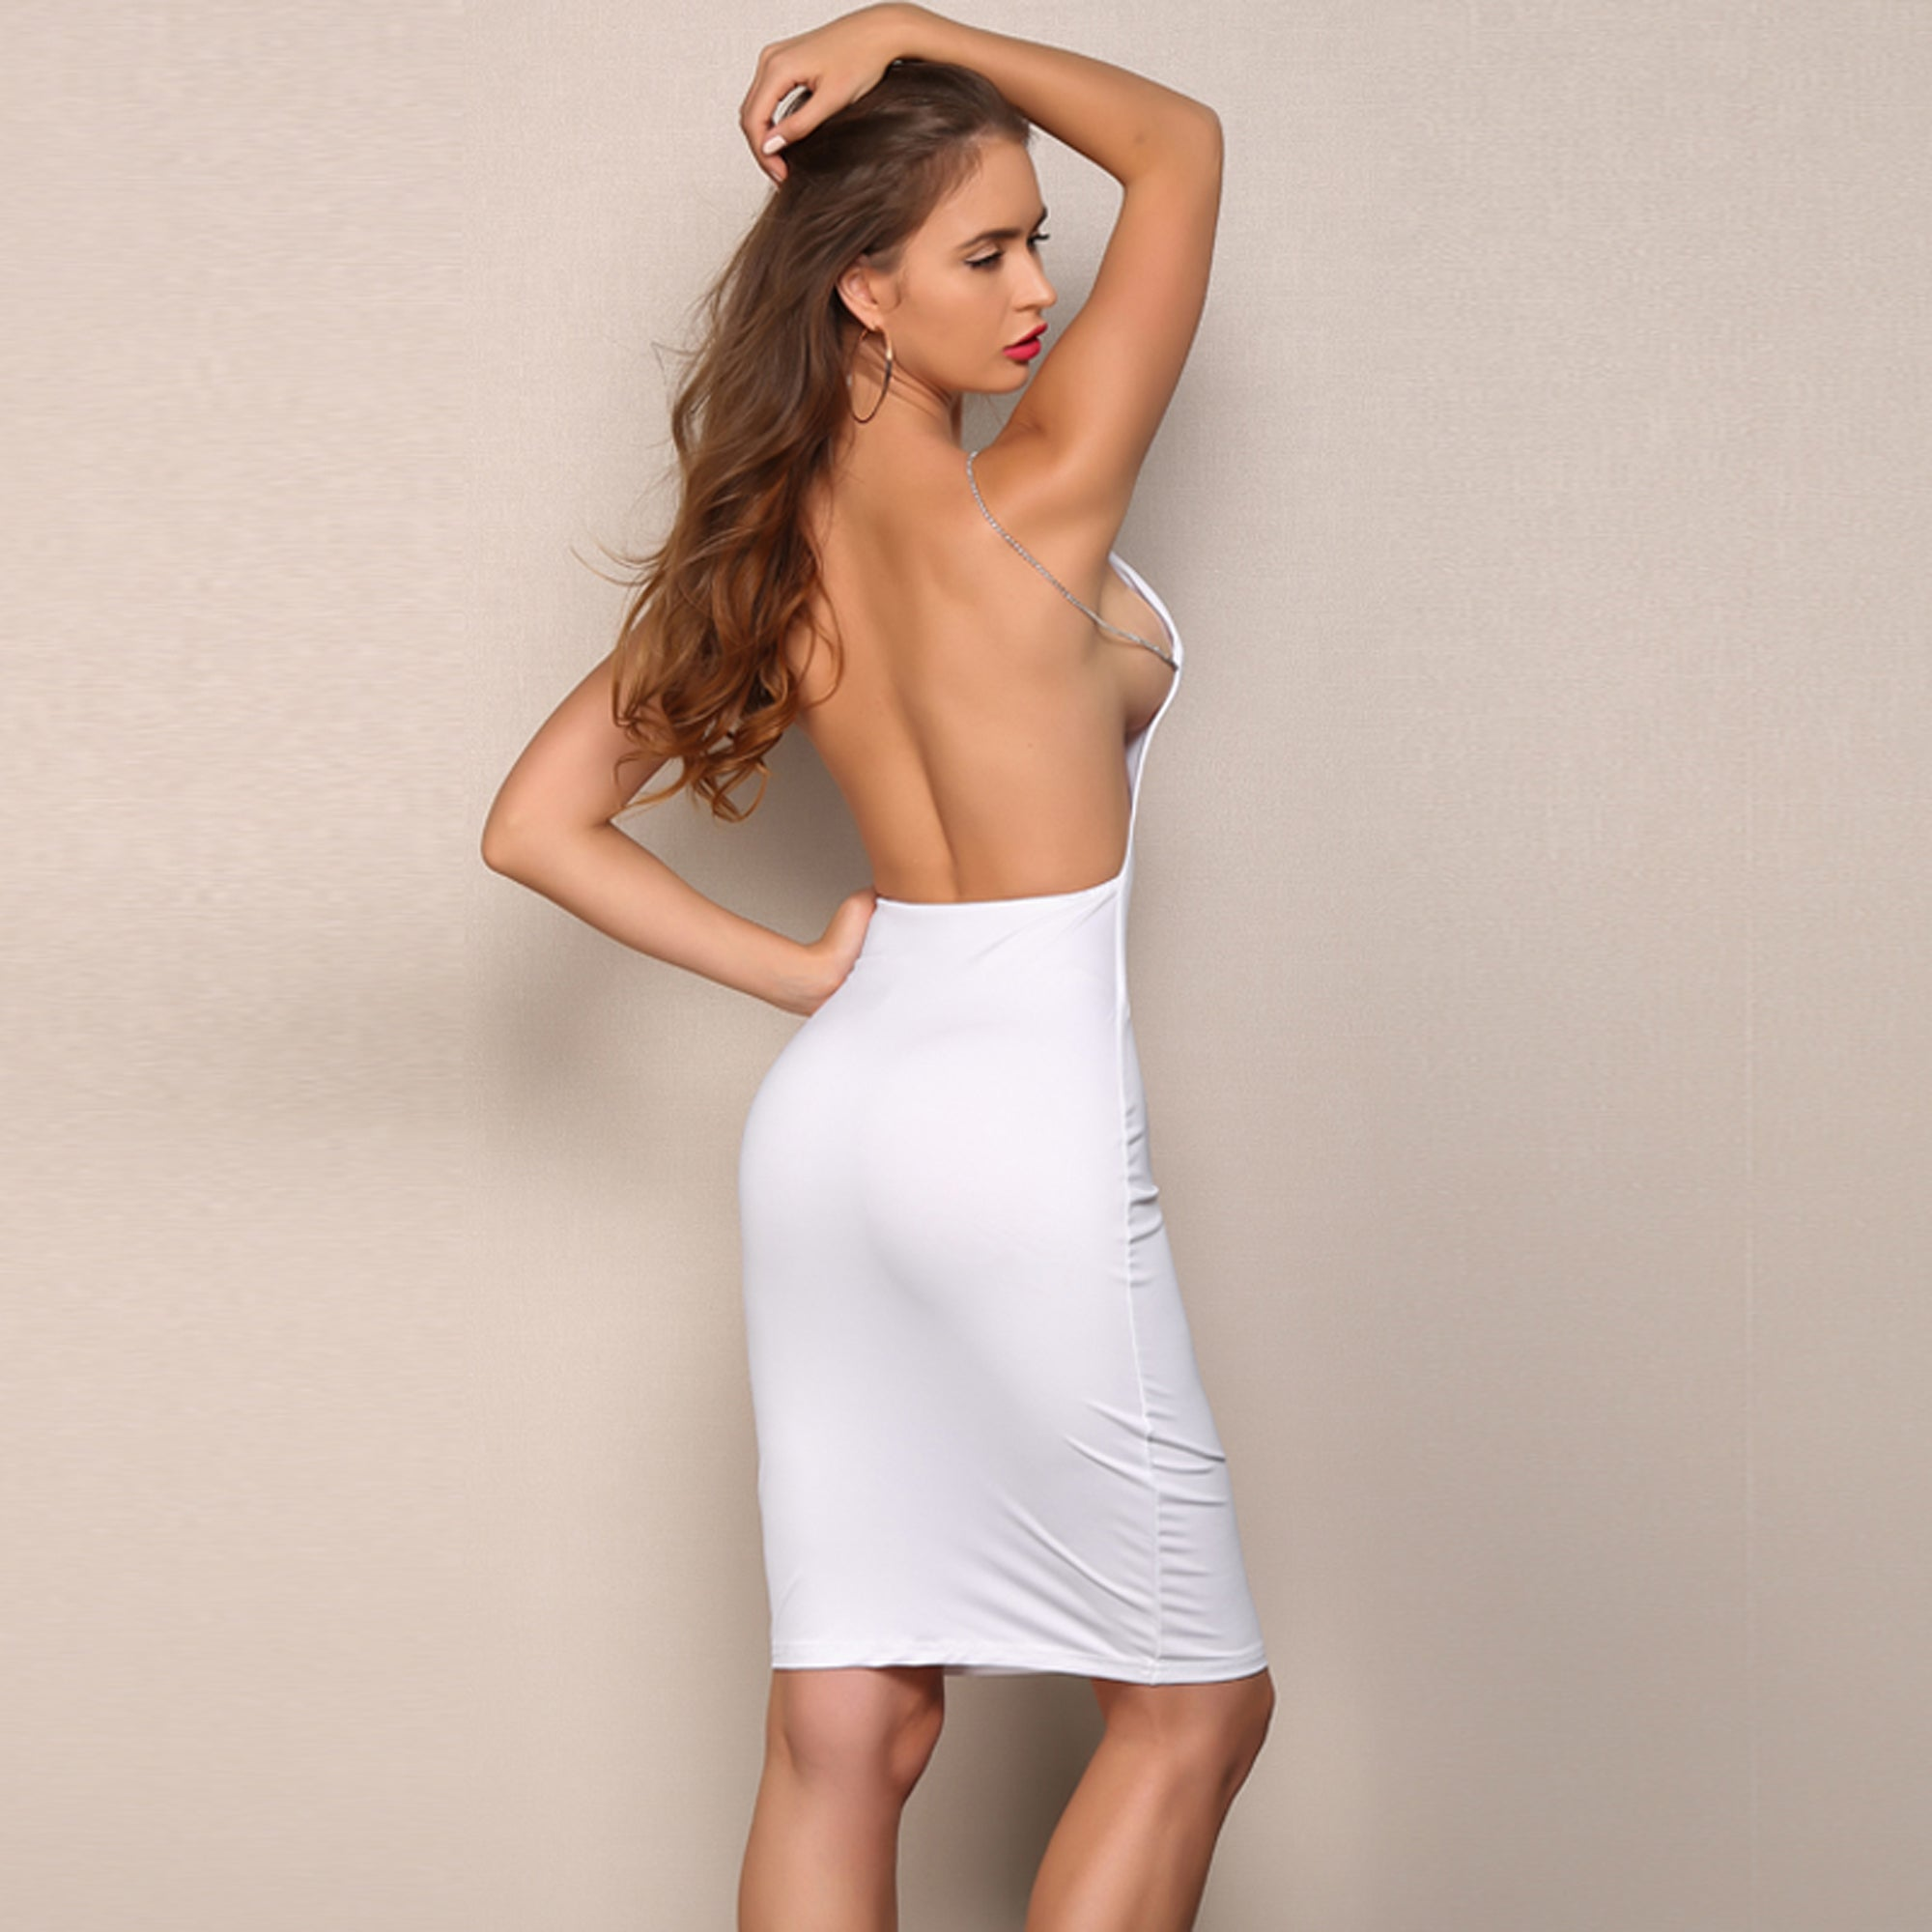 78e0fb7f7413 ... Cocktail Evening Spring Dresses Outfit Ideas for Going Out Party - White  Backless Halter Neck Midi ...